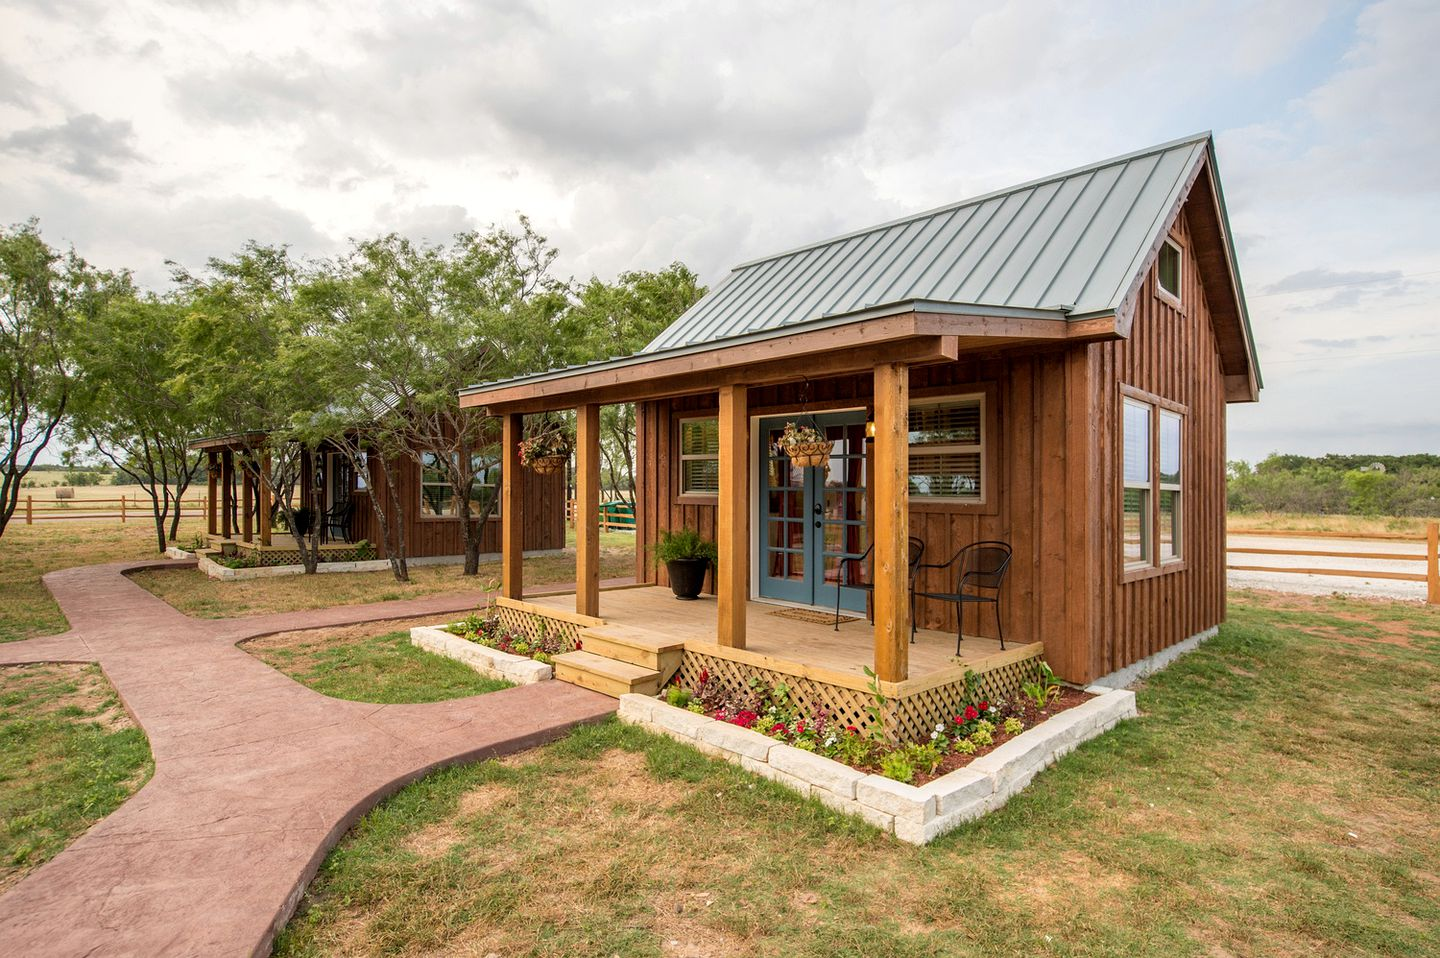 Tiny houses for rent in Waco, TX